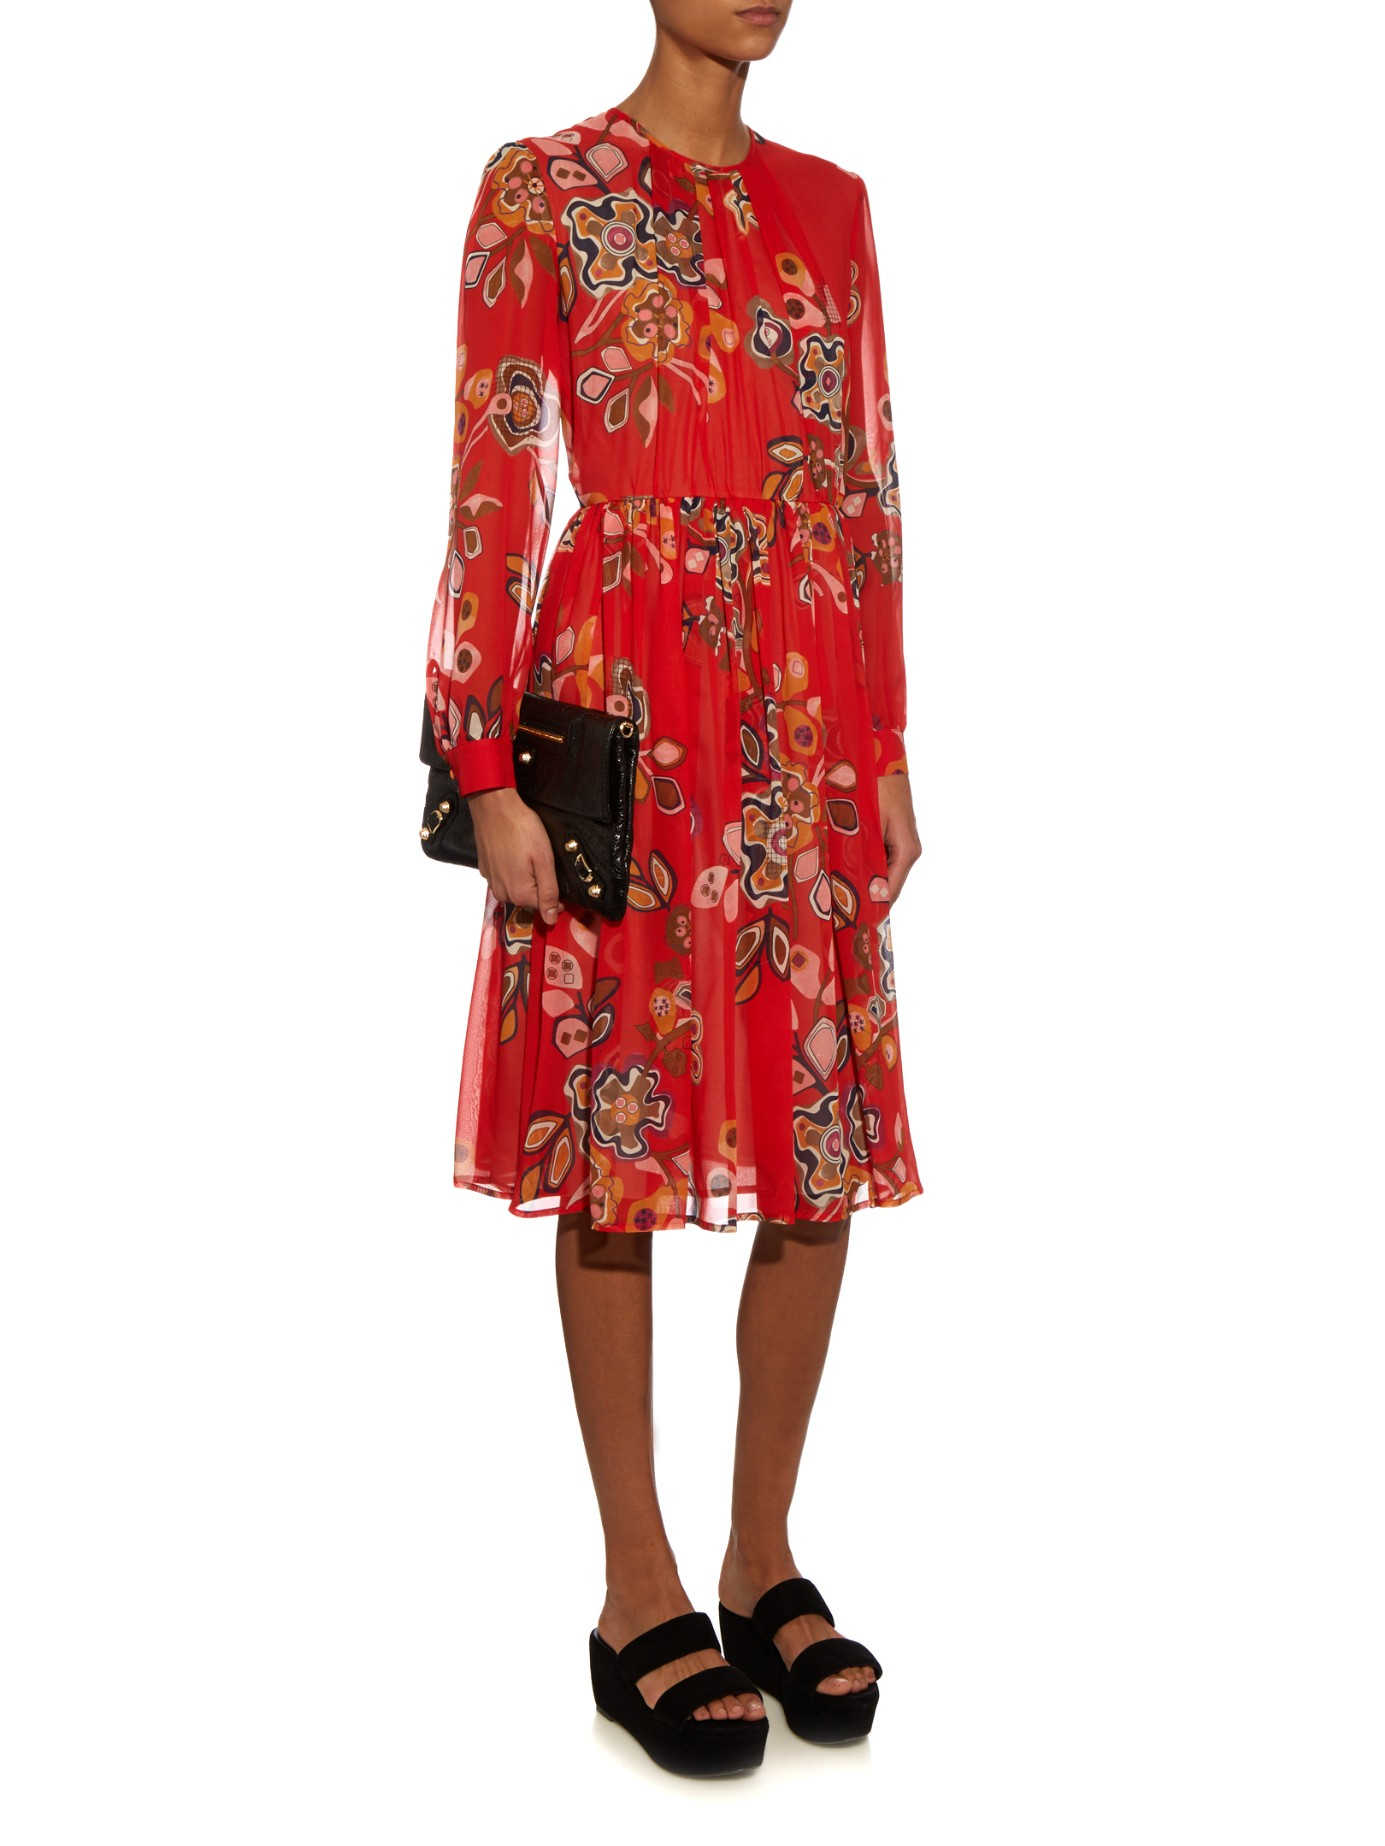 Quality Free Shipping Low Price Cheap Very Cheap Flowers printed long dress Msgm Outlet How Much Low Price Cheap Online Visit New Cheap Online RiT0X